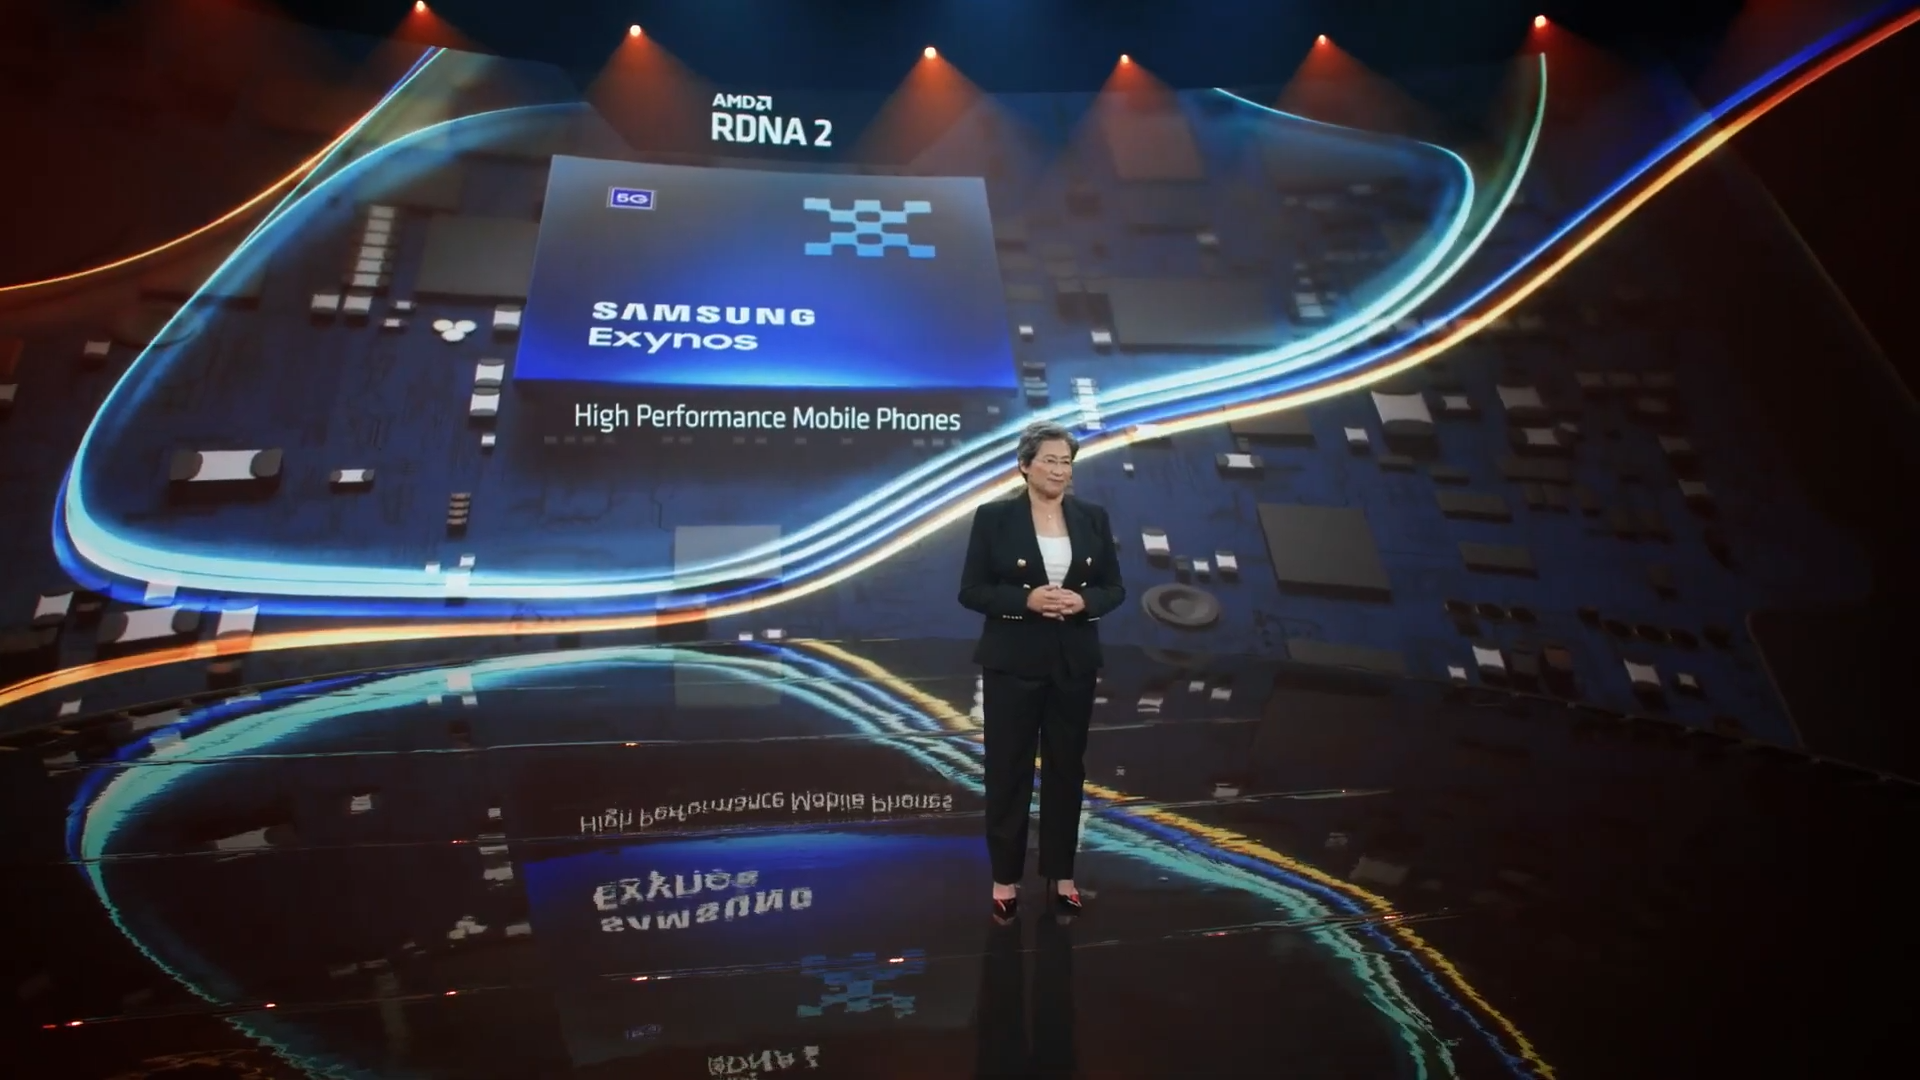 Samsung's New AMD-Powered Smartphone Chips Are Coming Later This Year